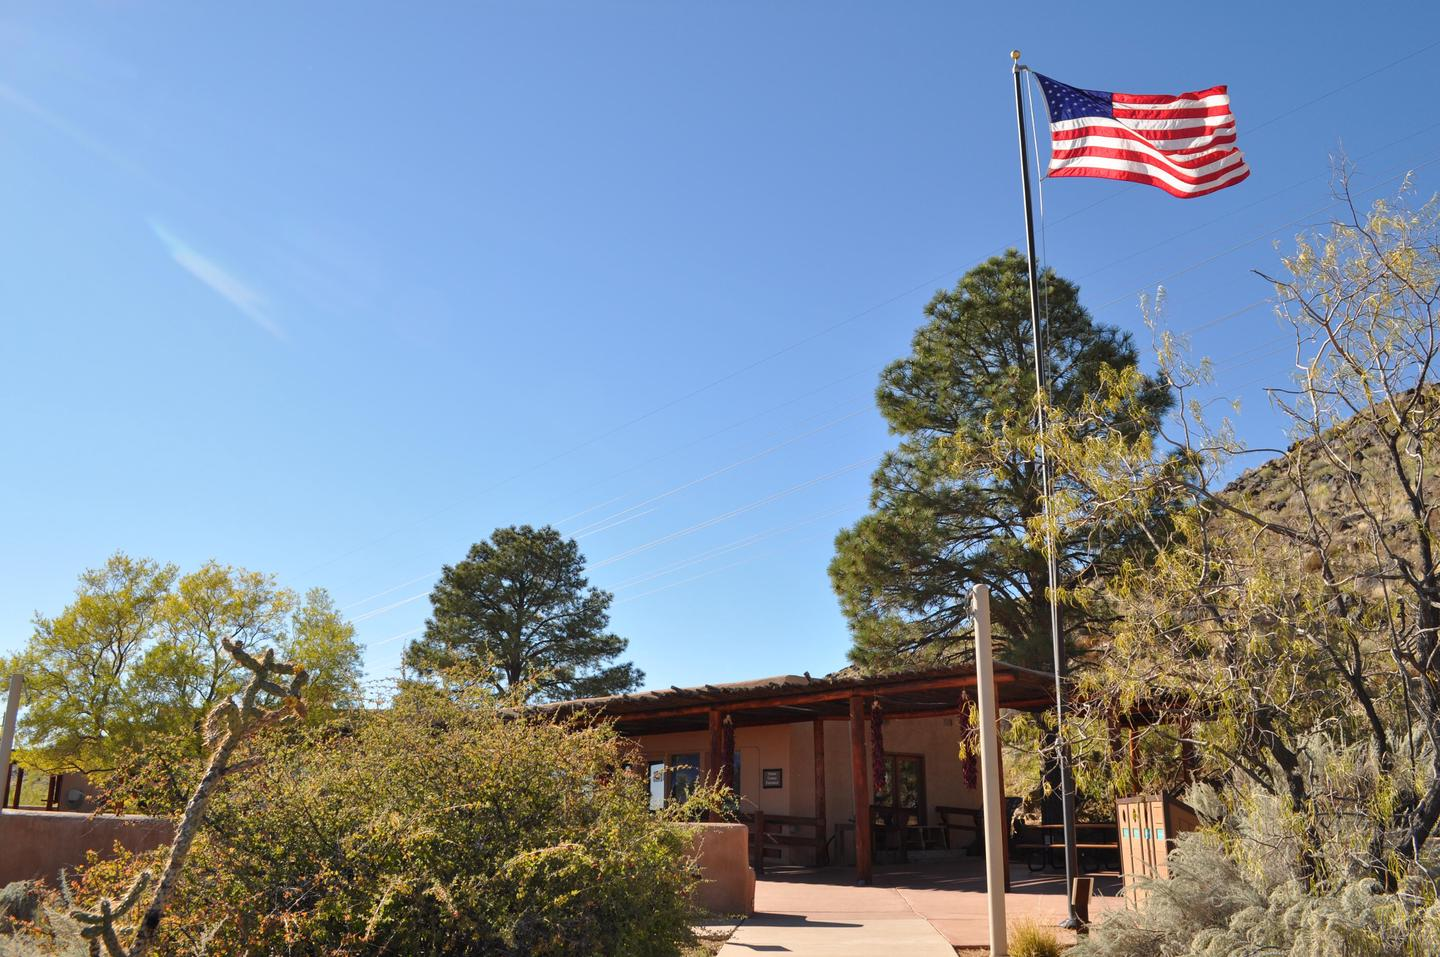 Petroglyph National Monument's Information CenterFront view of information center with flag flying.